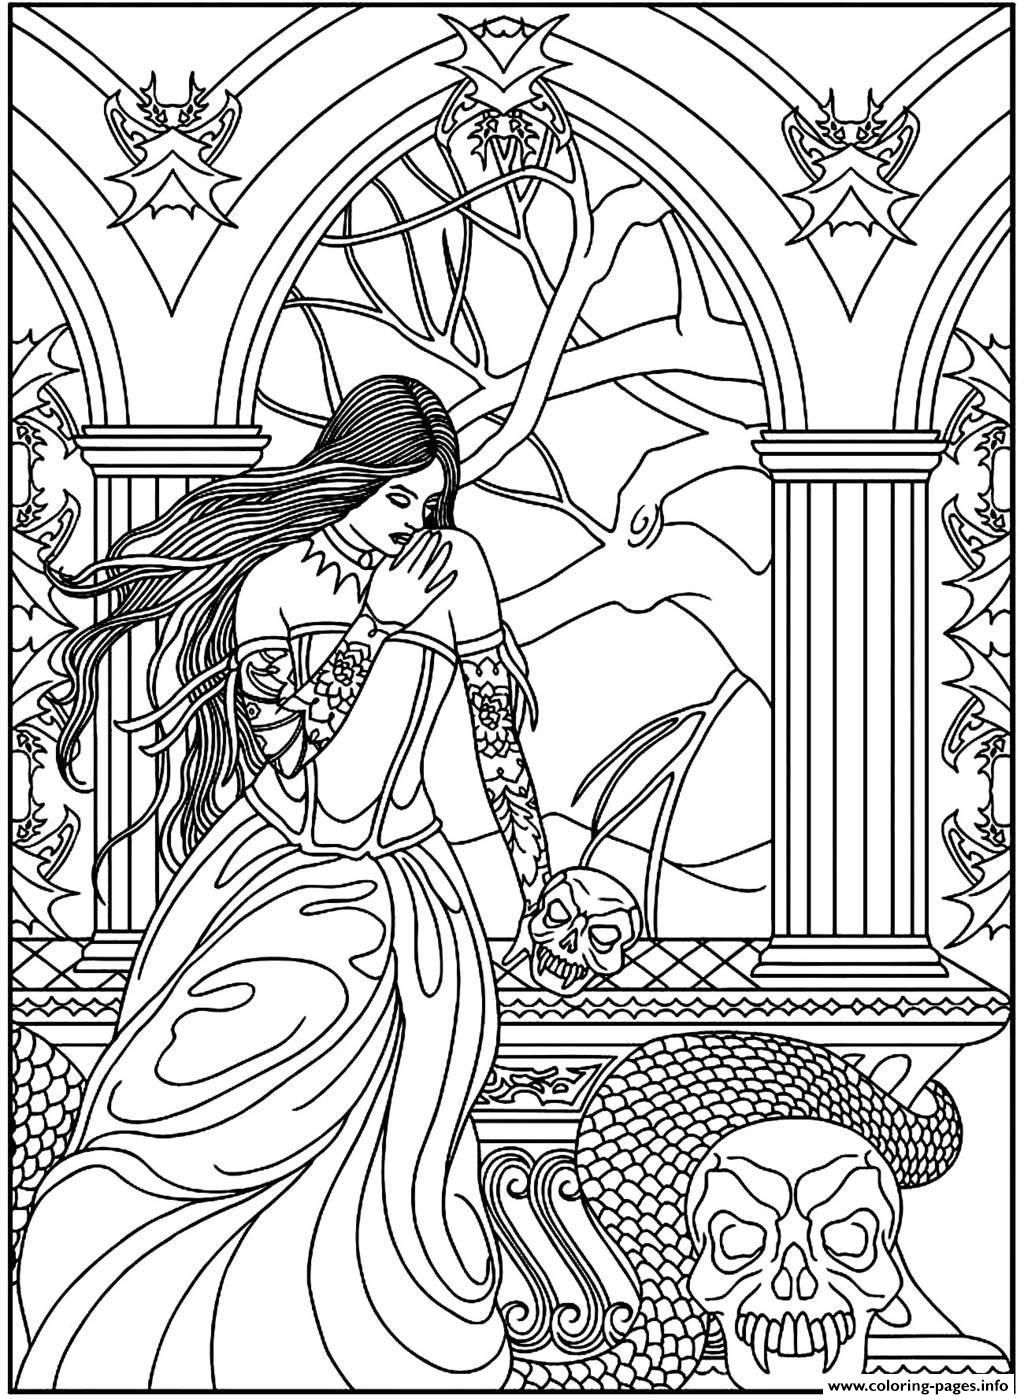 coloring pages for adults women fairy coloring pages for adults best coloring pages for kids coloring for adults women pages